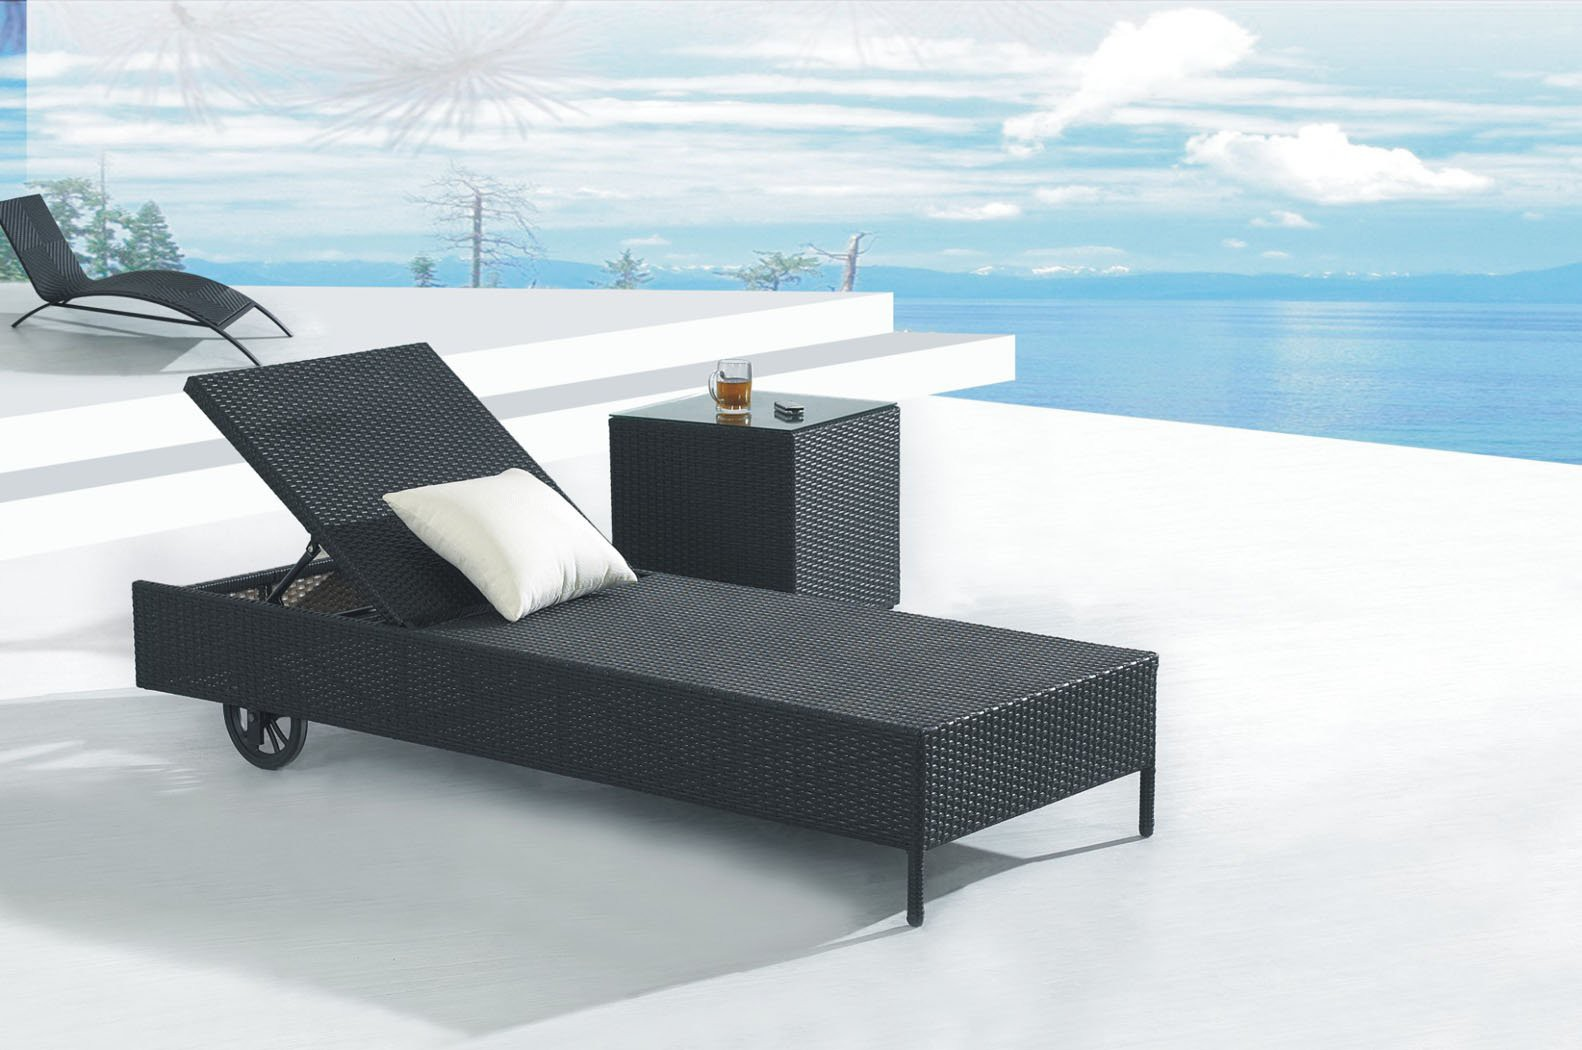 Outdoor Möbel Lounge Lounge Möbel Outdoor Ideen Ideen Top